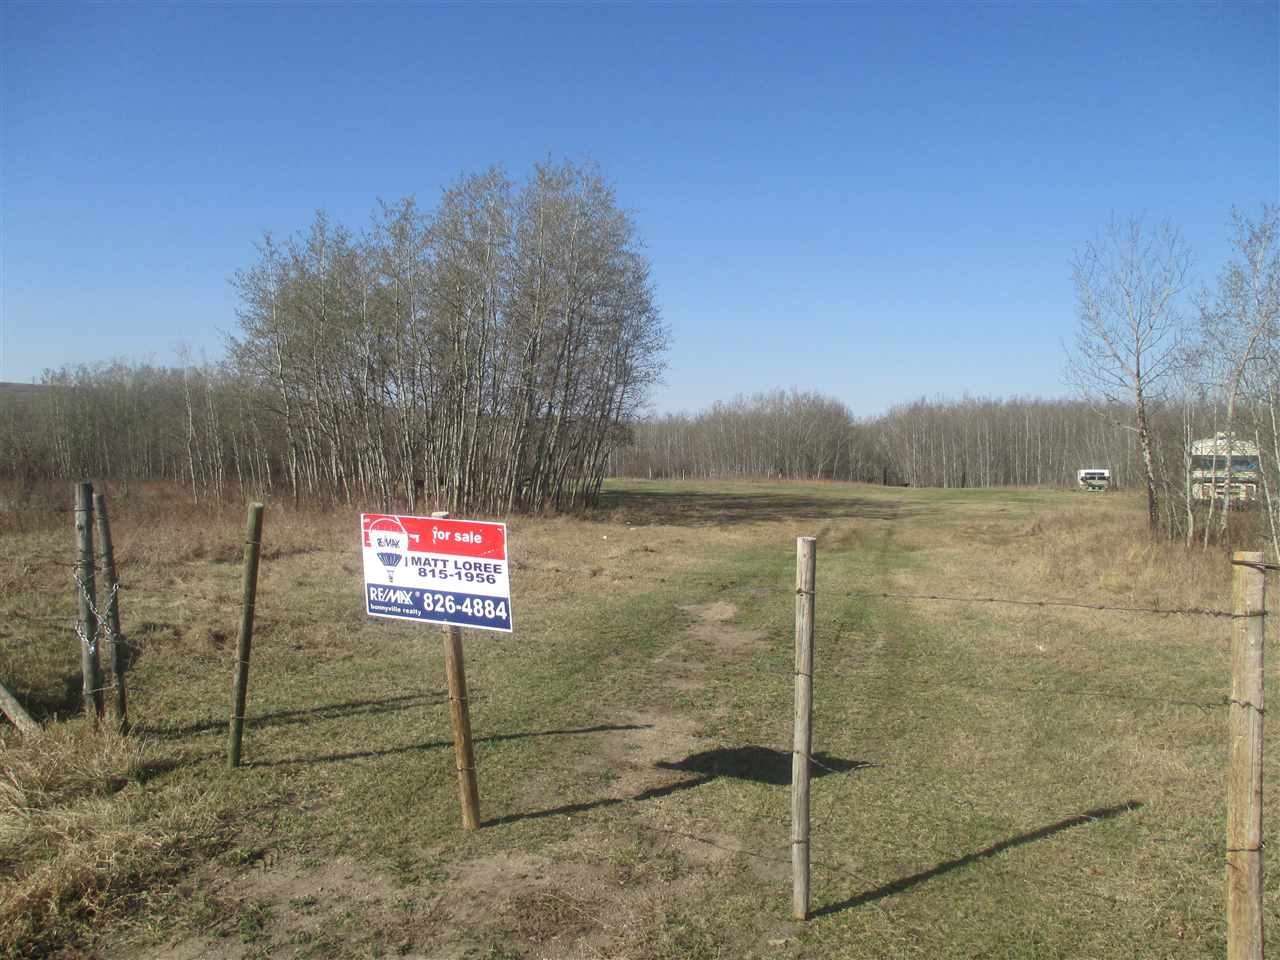 Twp Rd 592 & Rge Rd 460, at $79,900